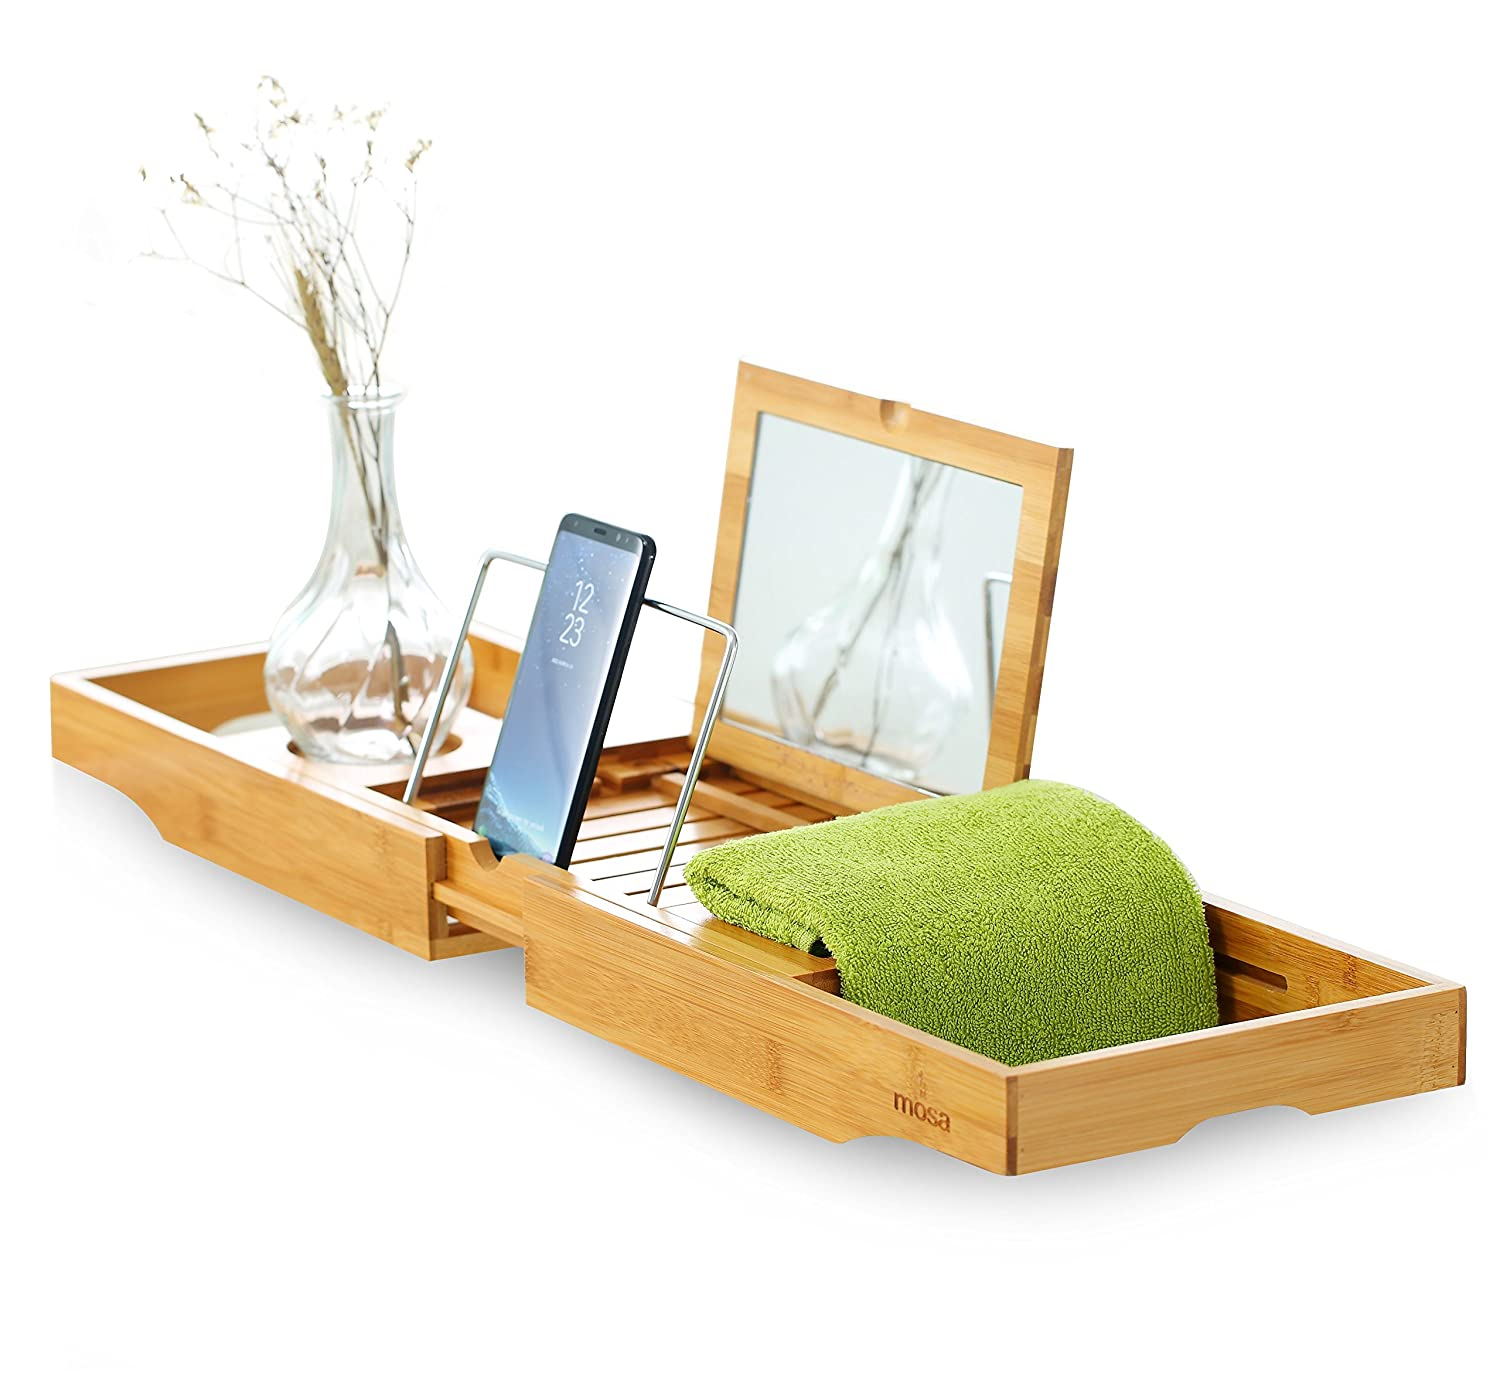 Mosa Natural Bamboo Bathtub Tray Bath Caddy Accessories, 27.6 X 8.7 X 1.9, Wooden technext020 03